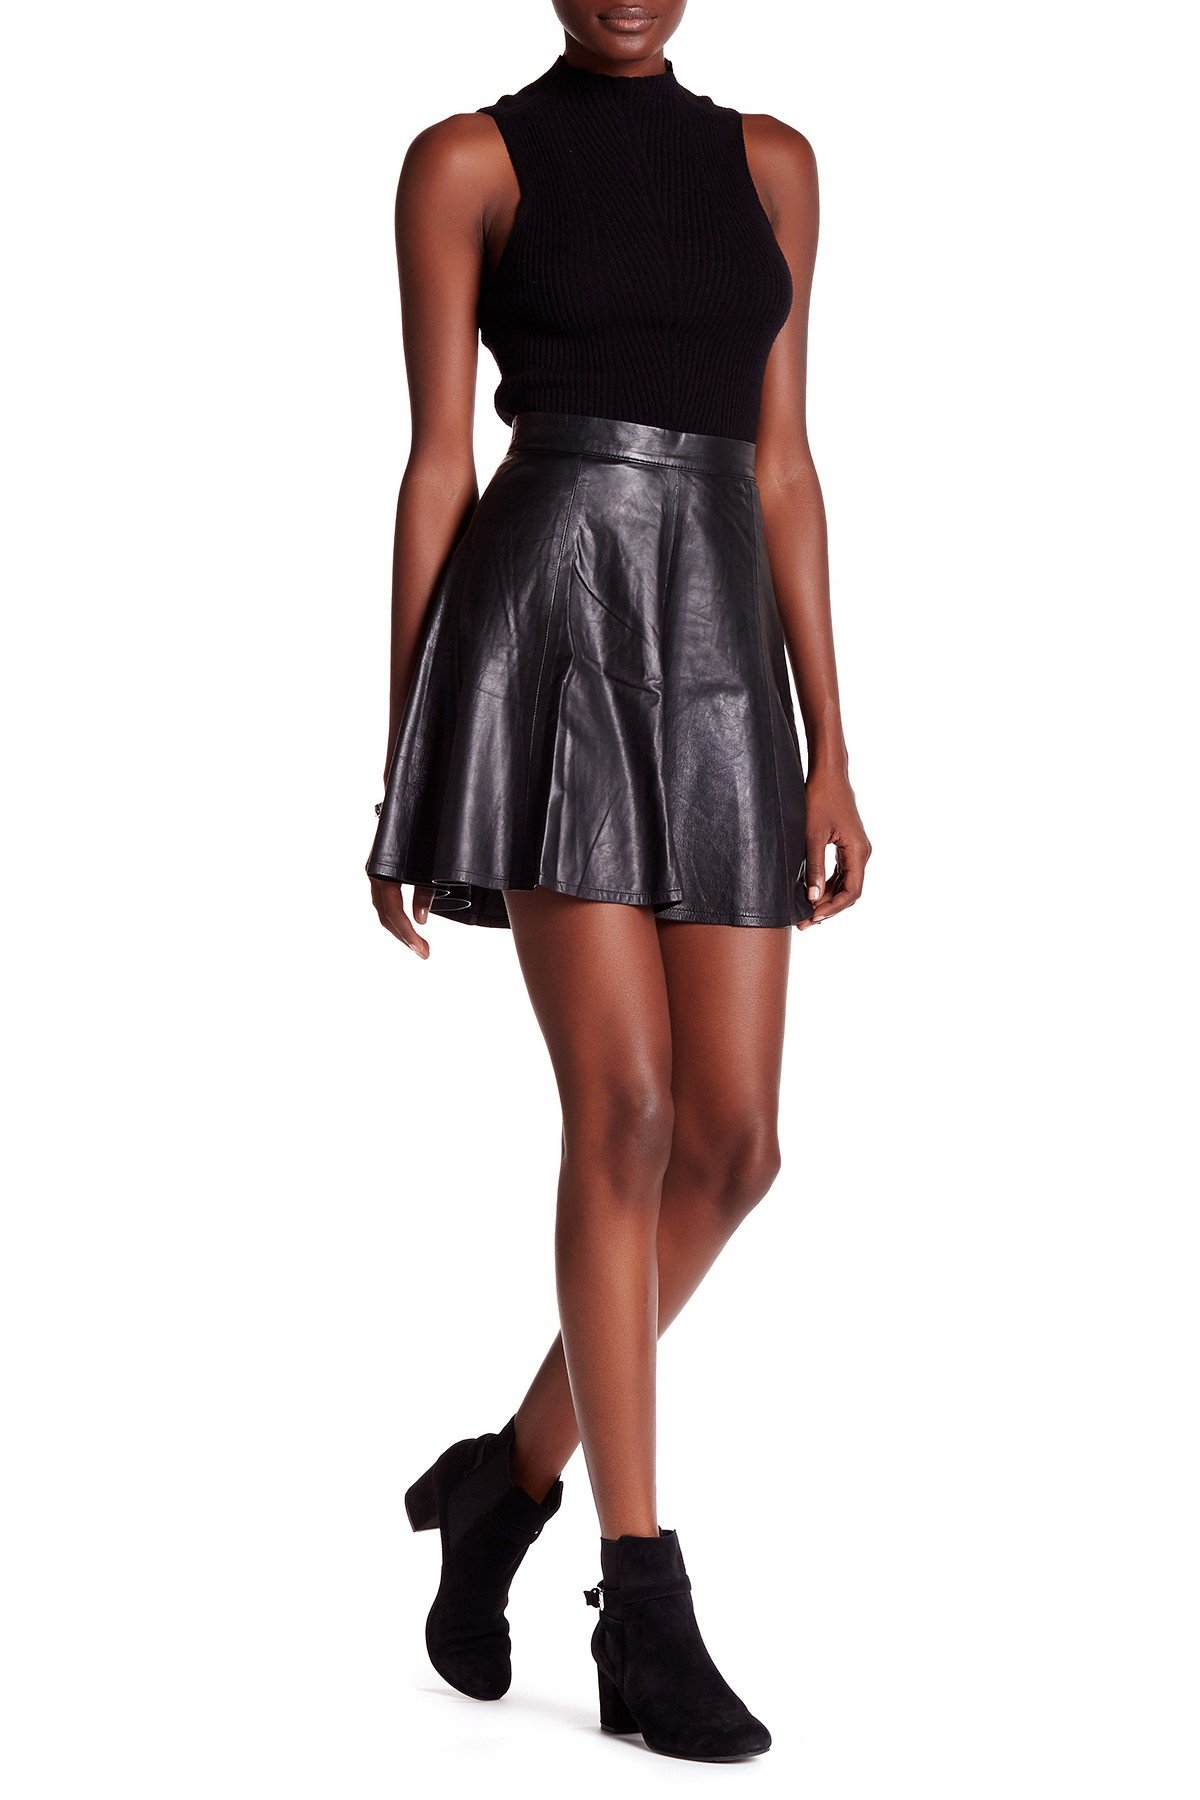 rag & bone Women's Suki Genuine Leather Flared Skirt Black Size 0 (25) by rag & bone